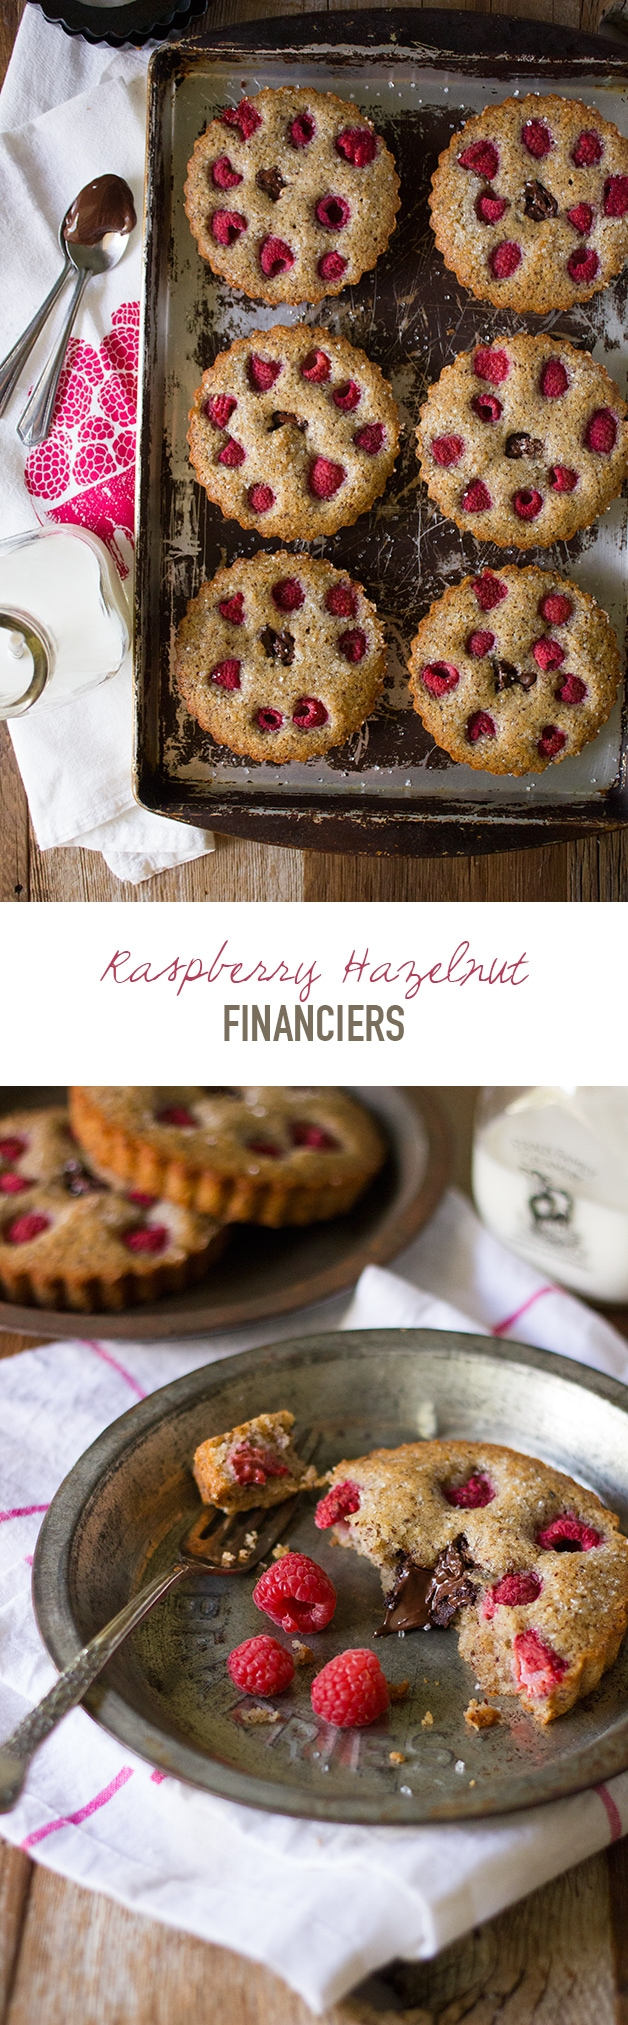 Raspberry Hazelnut Financiers - Super-soft French hazelnut teacakes studded with juicy raspberries, plus a creamy chocolate-hazelnut center. | www.brighteyedbaker.com